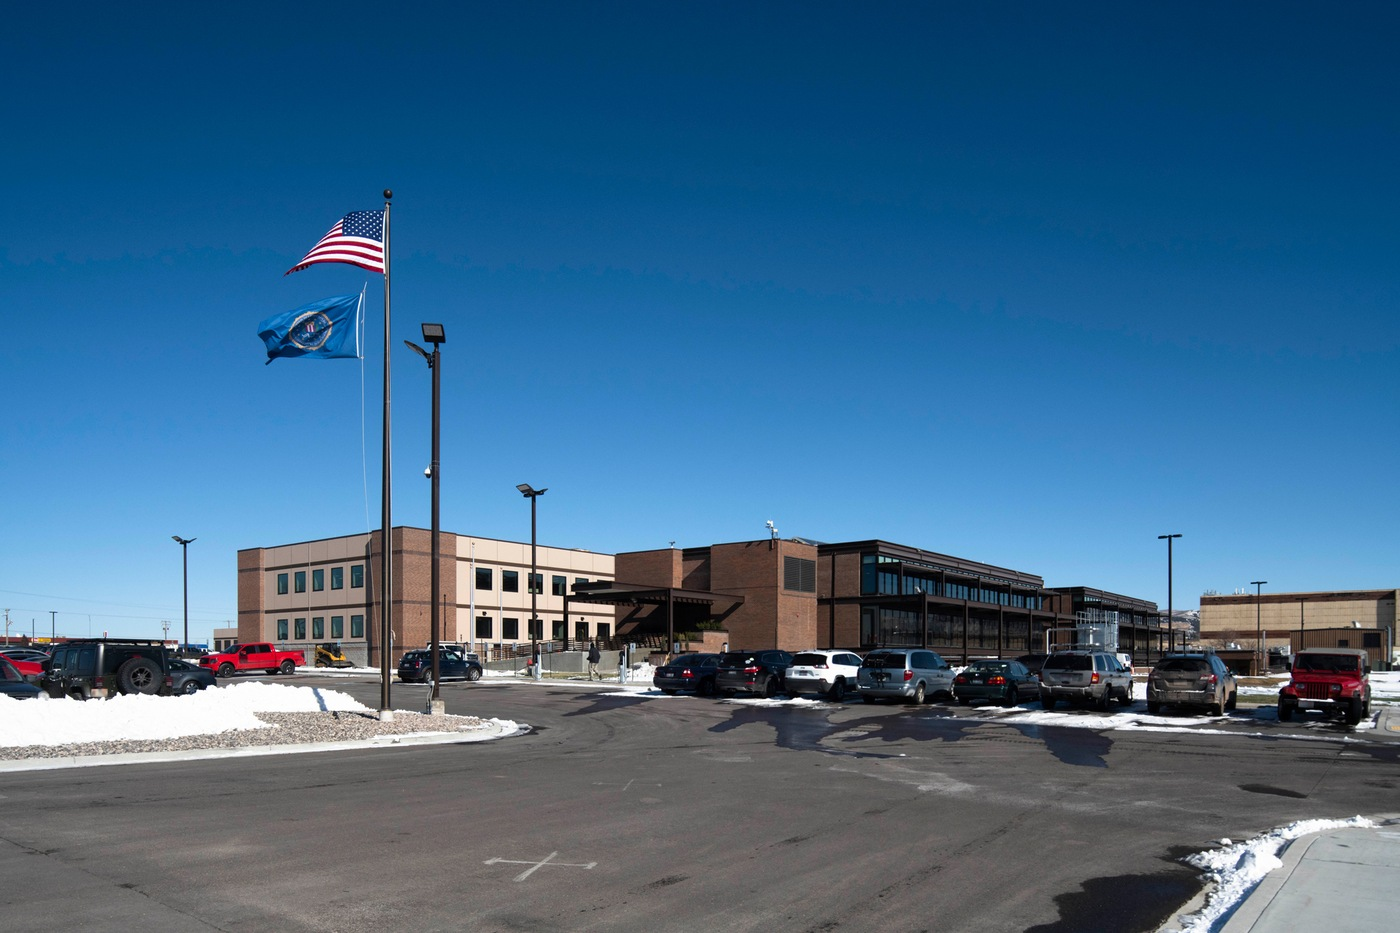 Exterior front view of the FBI's facility in Pocatello, Idaho, where a ribbon-cutting ceremony for its new data center was held November 18, 2019.